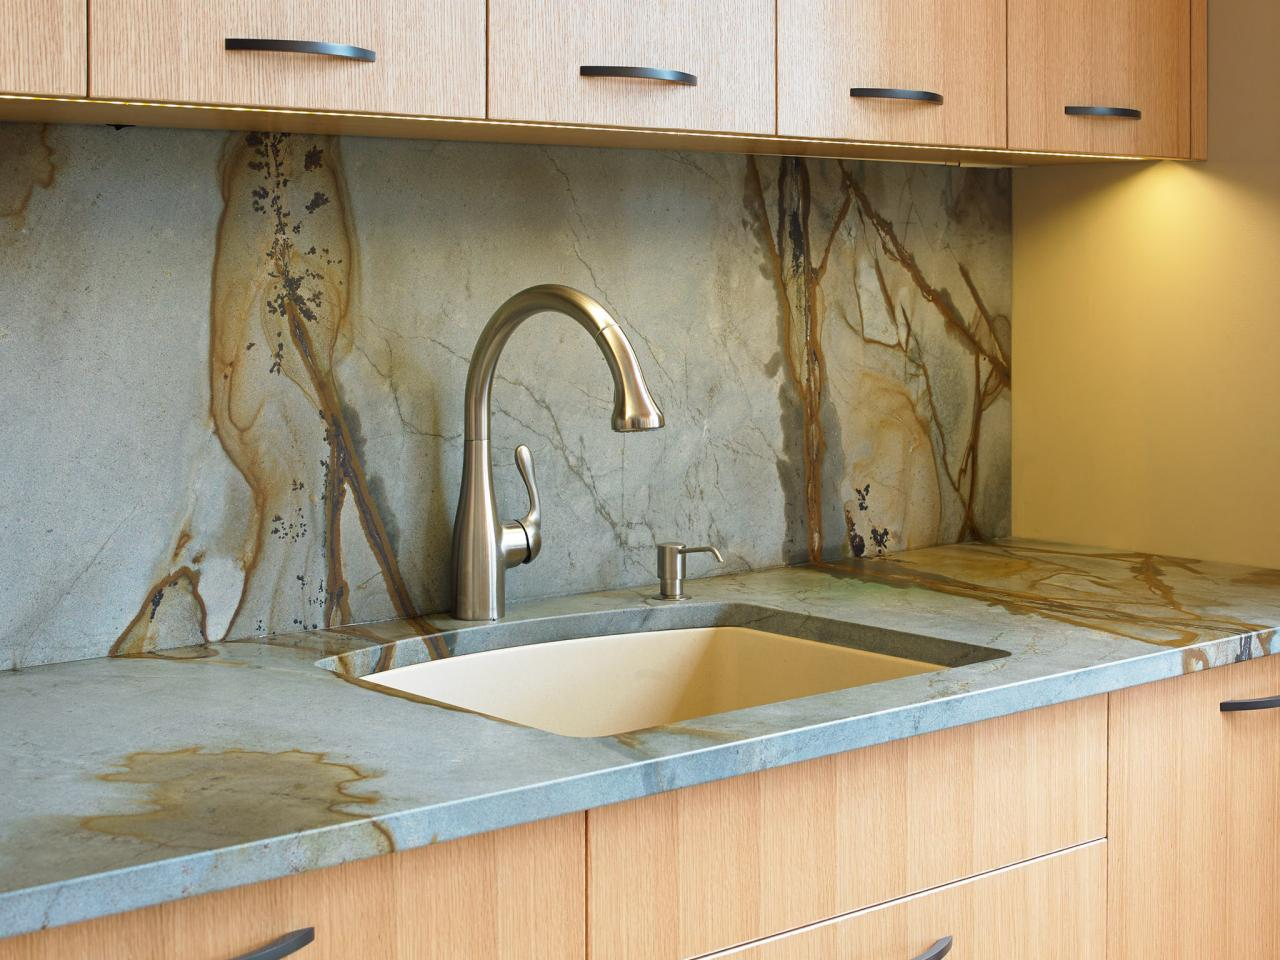 backsplash ideas for granite countertops  hgtv pictures  hgtv, Home decor